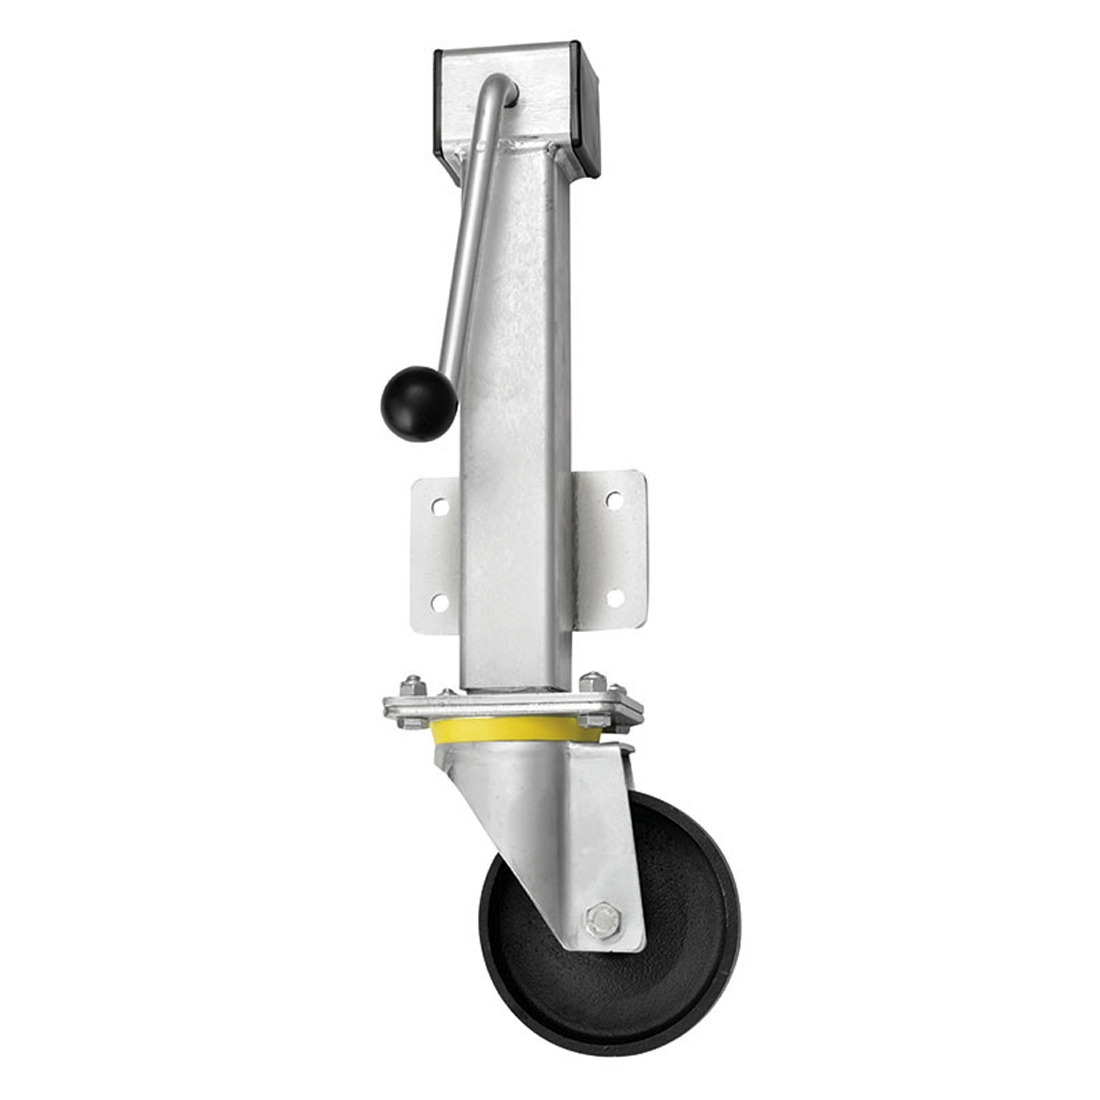 Jacking Castors Heavy Duty Cast Iron Wheel RH Series